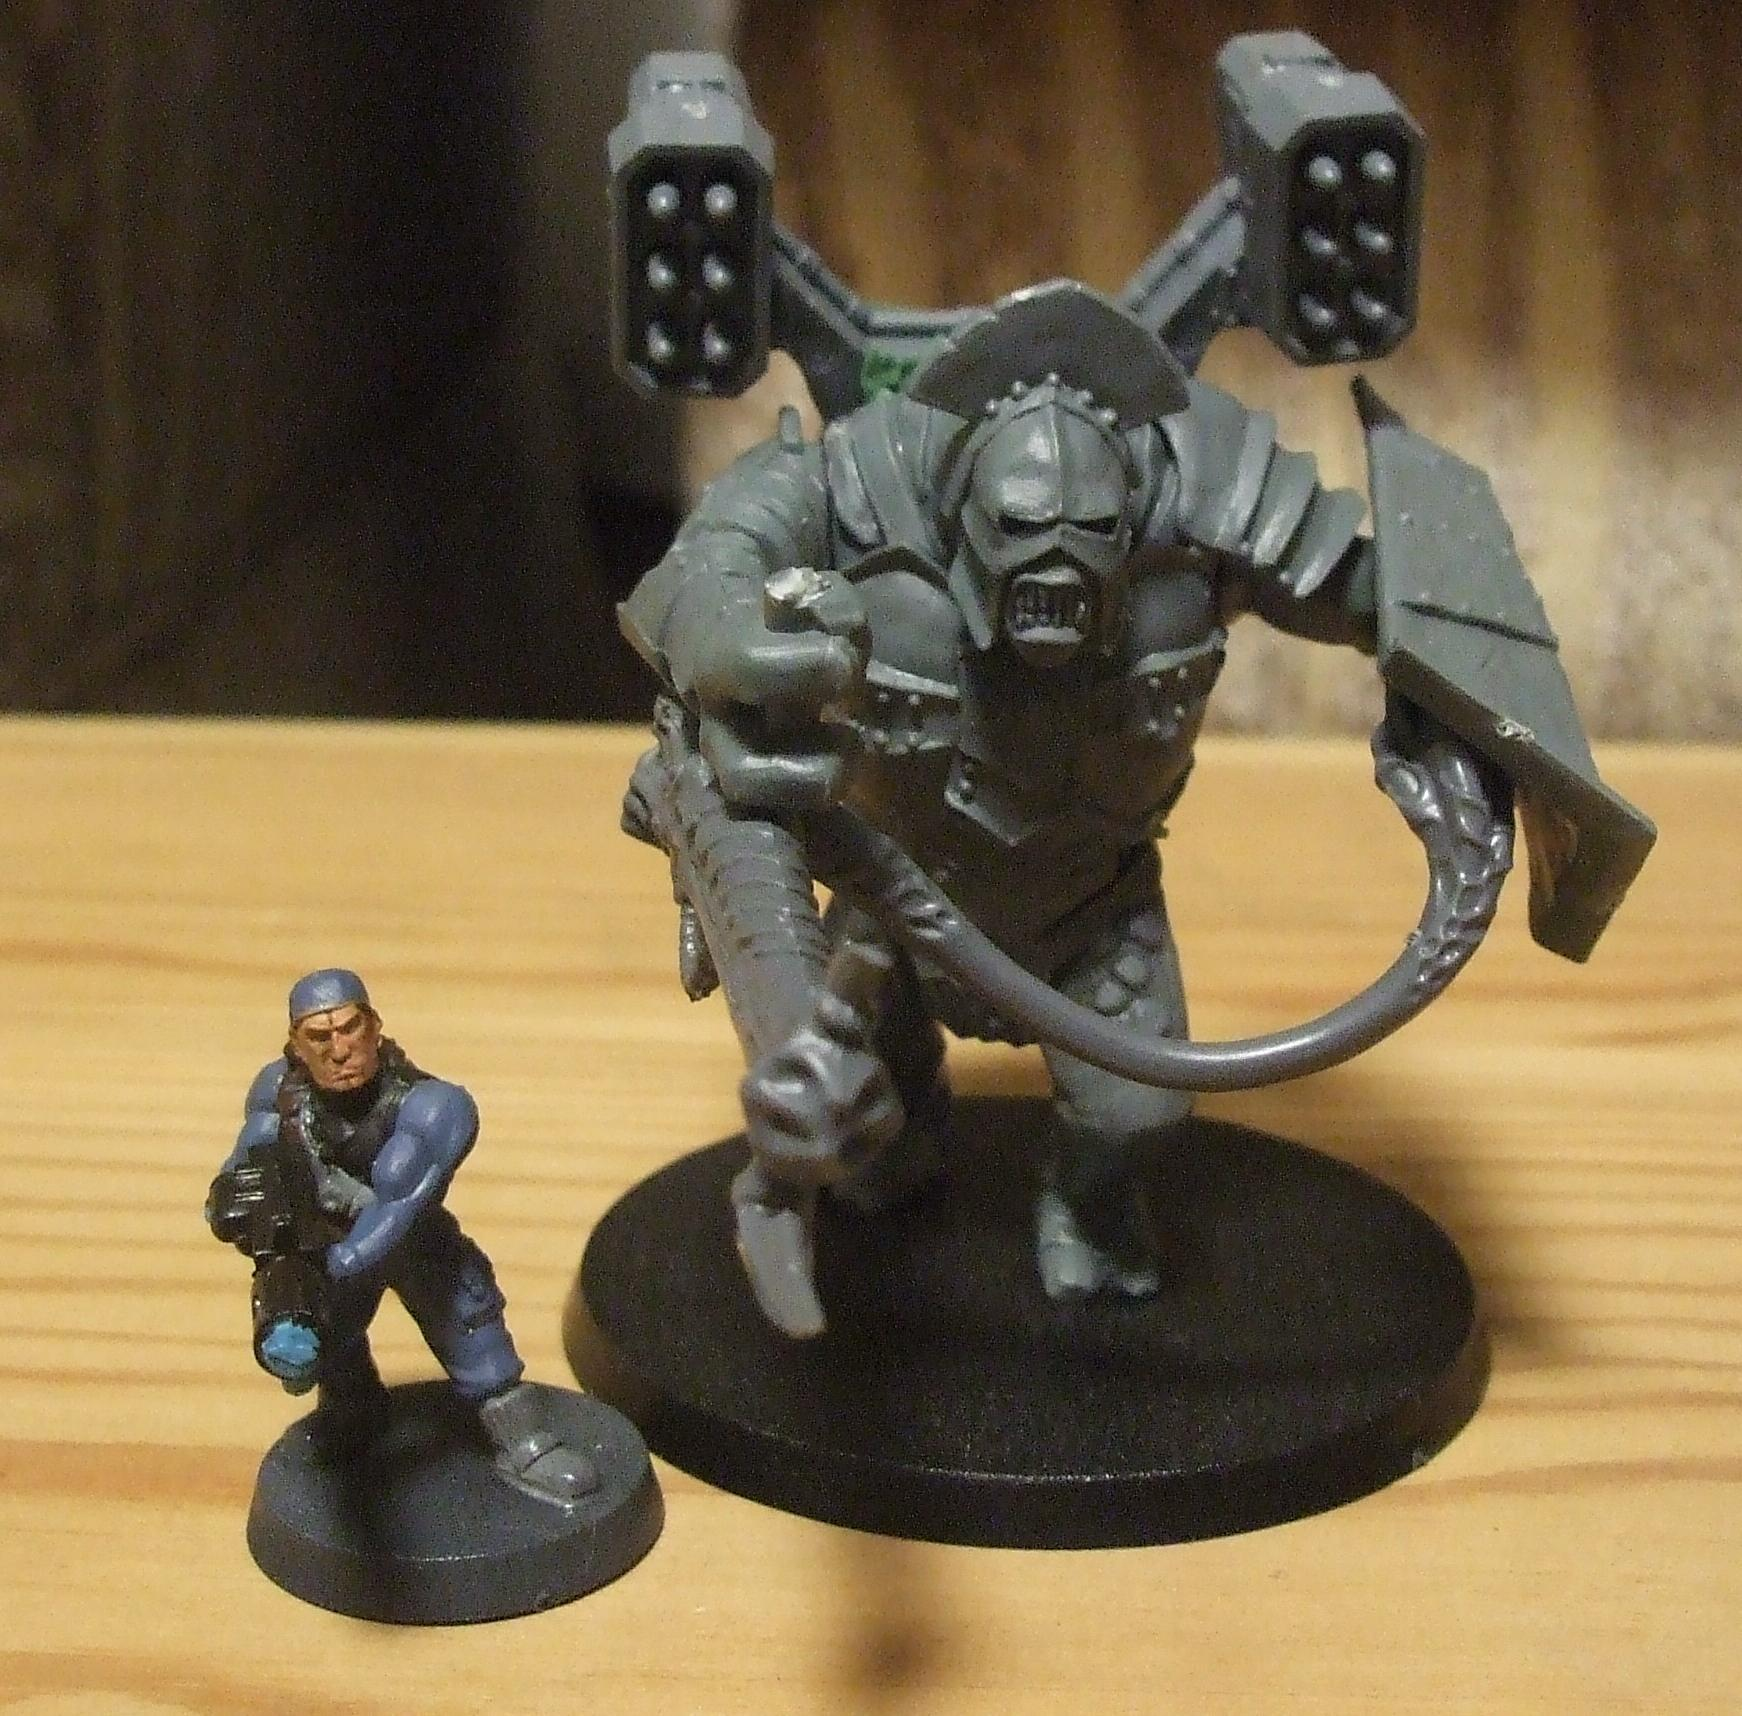 Carnifex, Genestealer Cult, Lord Of The Rings, Servitors, Troll